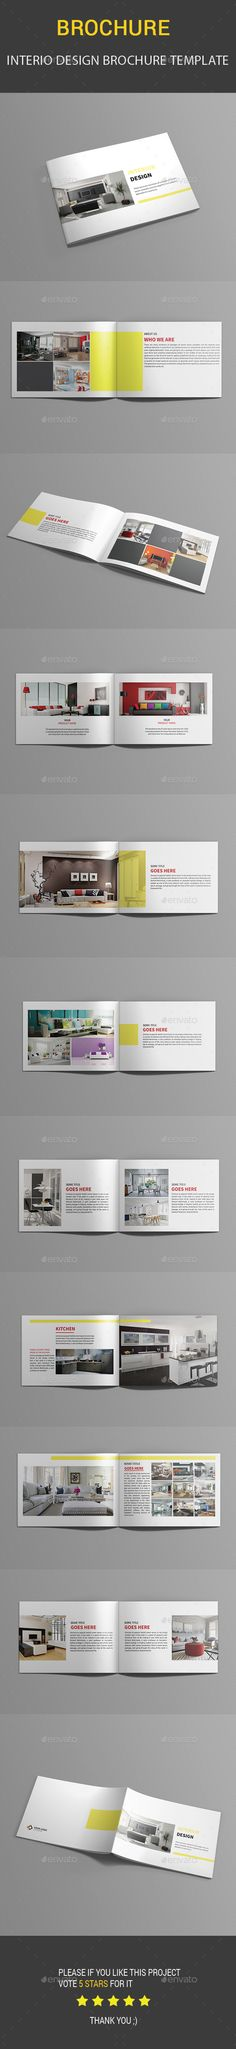 Interio Design Brochure Template InDesign INDD. Download here…